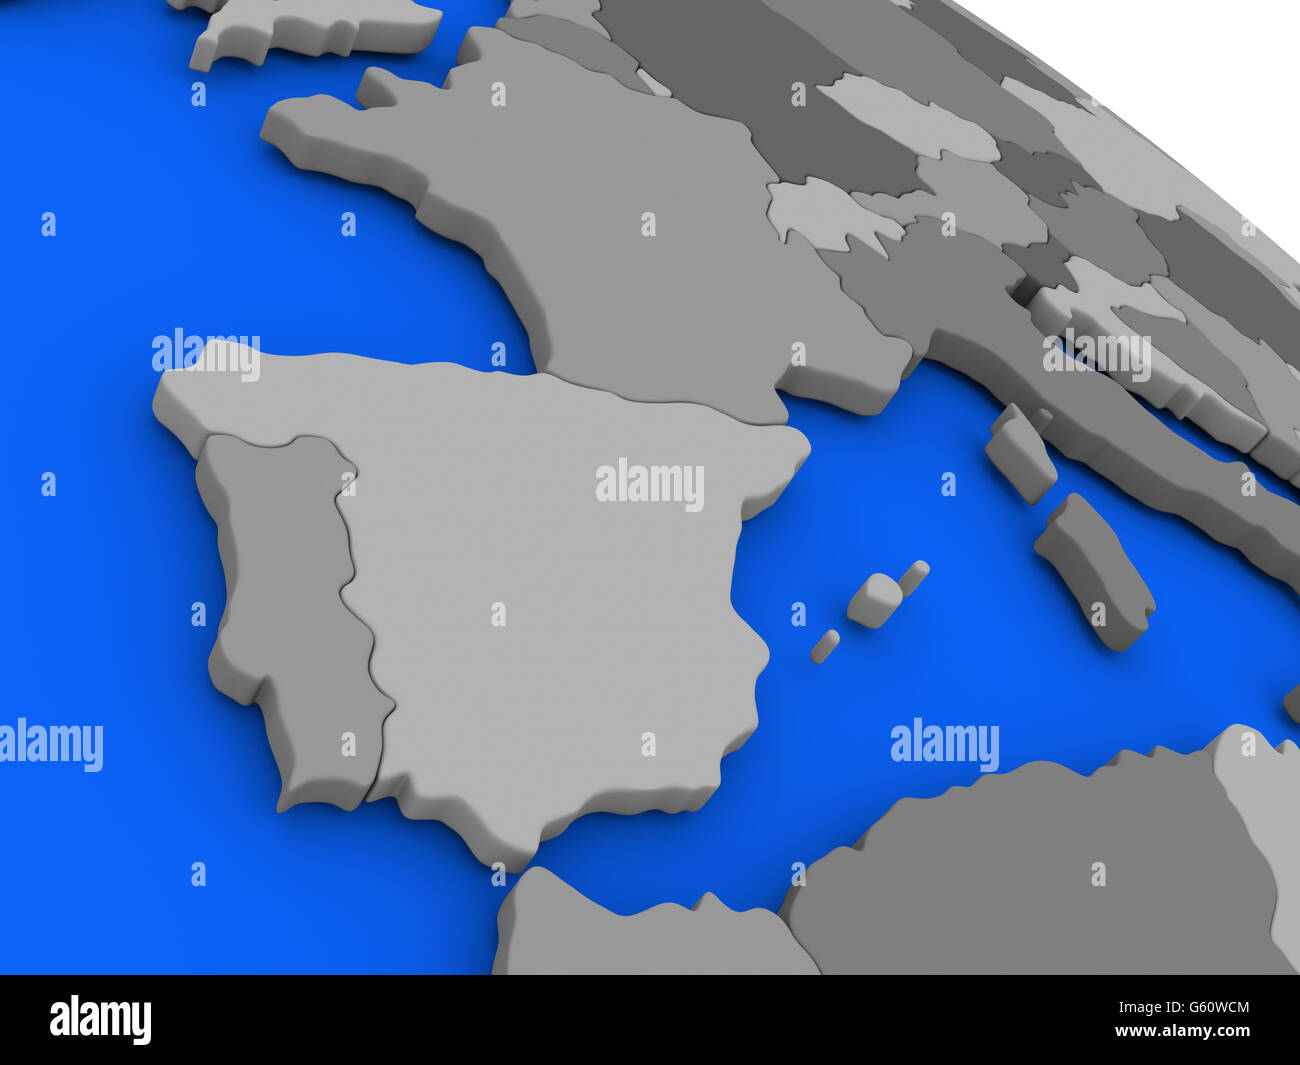 Map of spain and portugal on 3d model of earth with countries in map of spain and portugal on 3d model of earth with countries in various shades of grey and blue oceans 3d illustration gumiabroncs Image collections